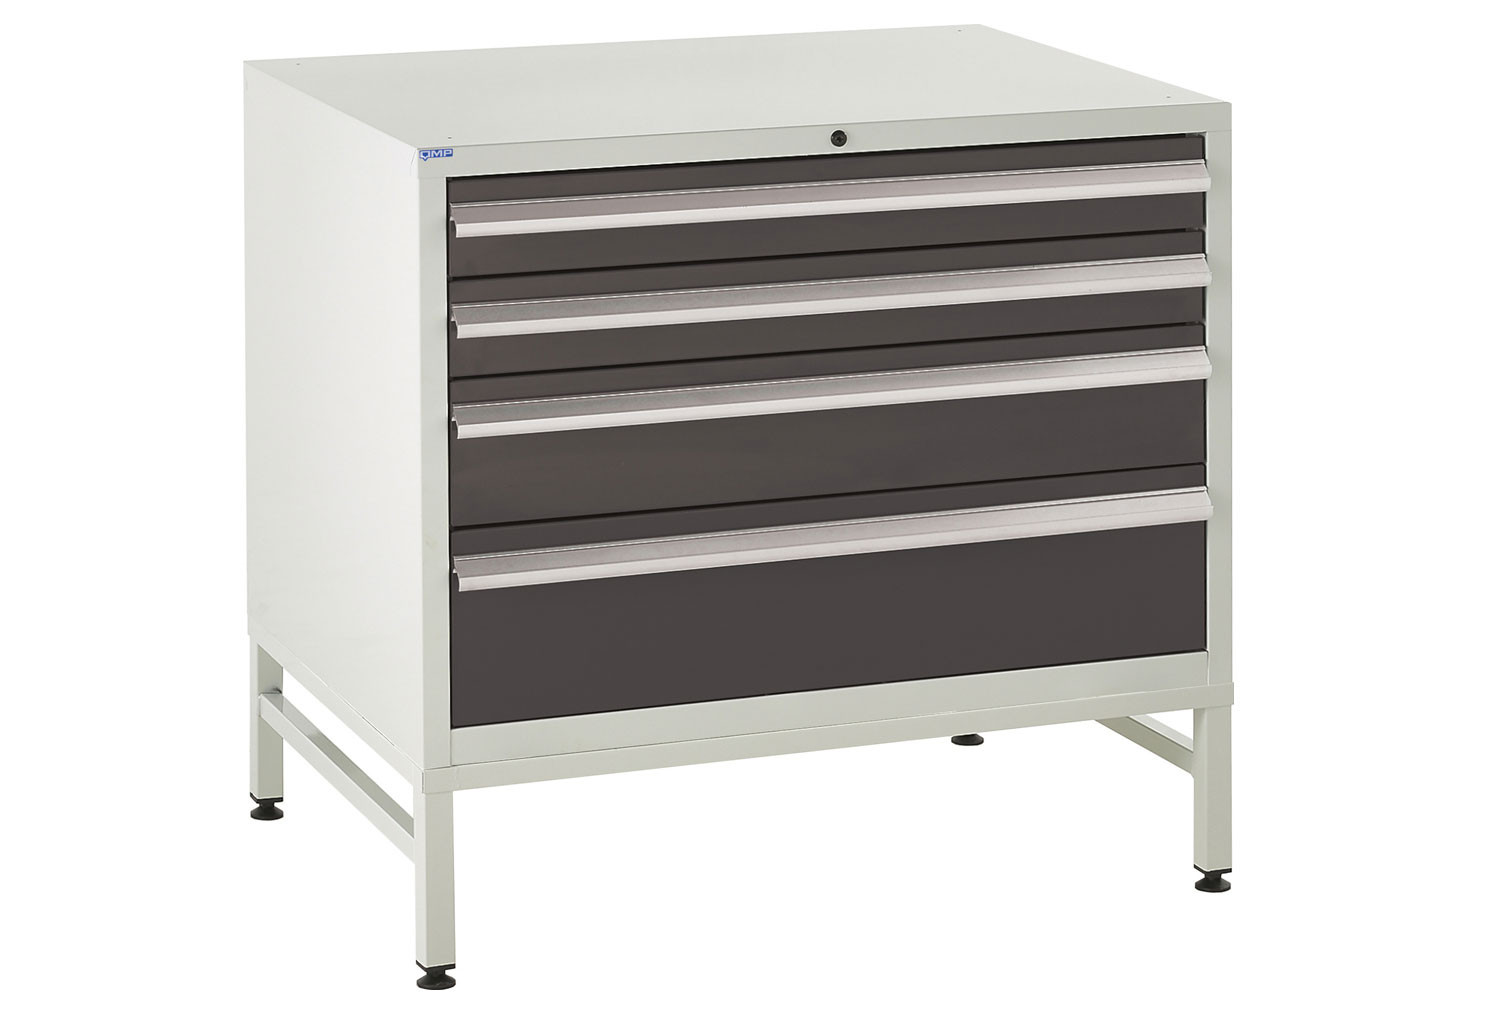 Euroslide 900 Under Bench 4 Drawer Cabinet With Stand 825h